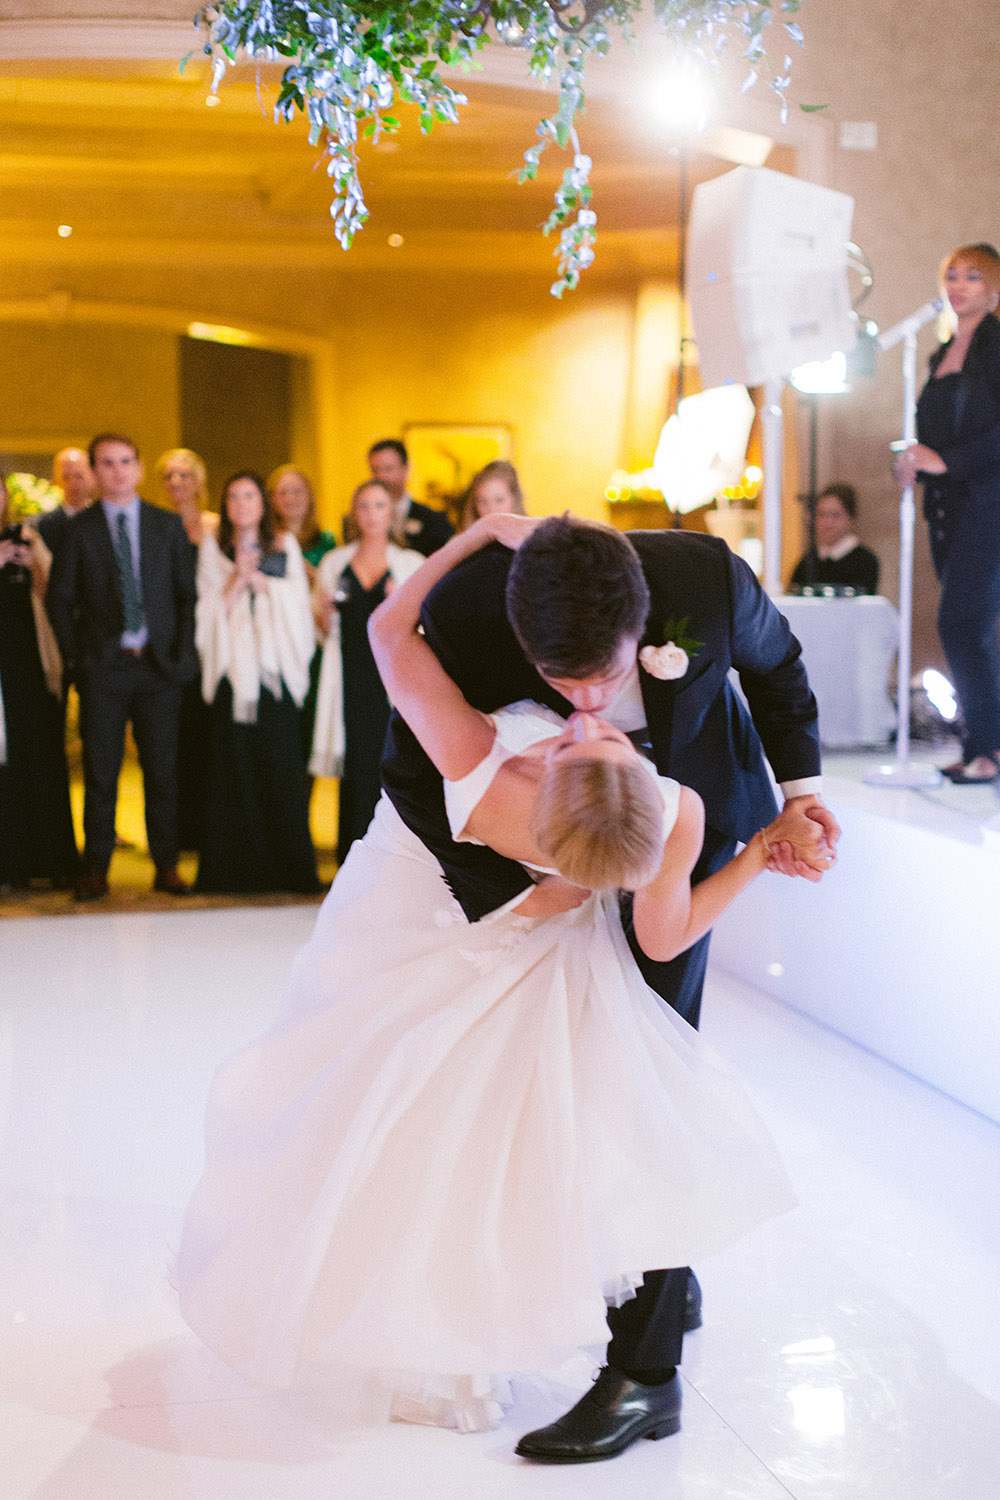 Groom kissing bride on a white dance floor amidst lush hanging greenery